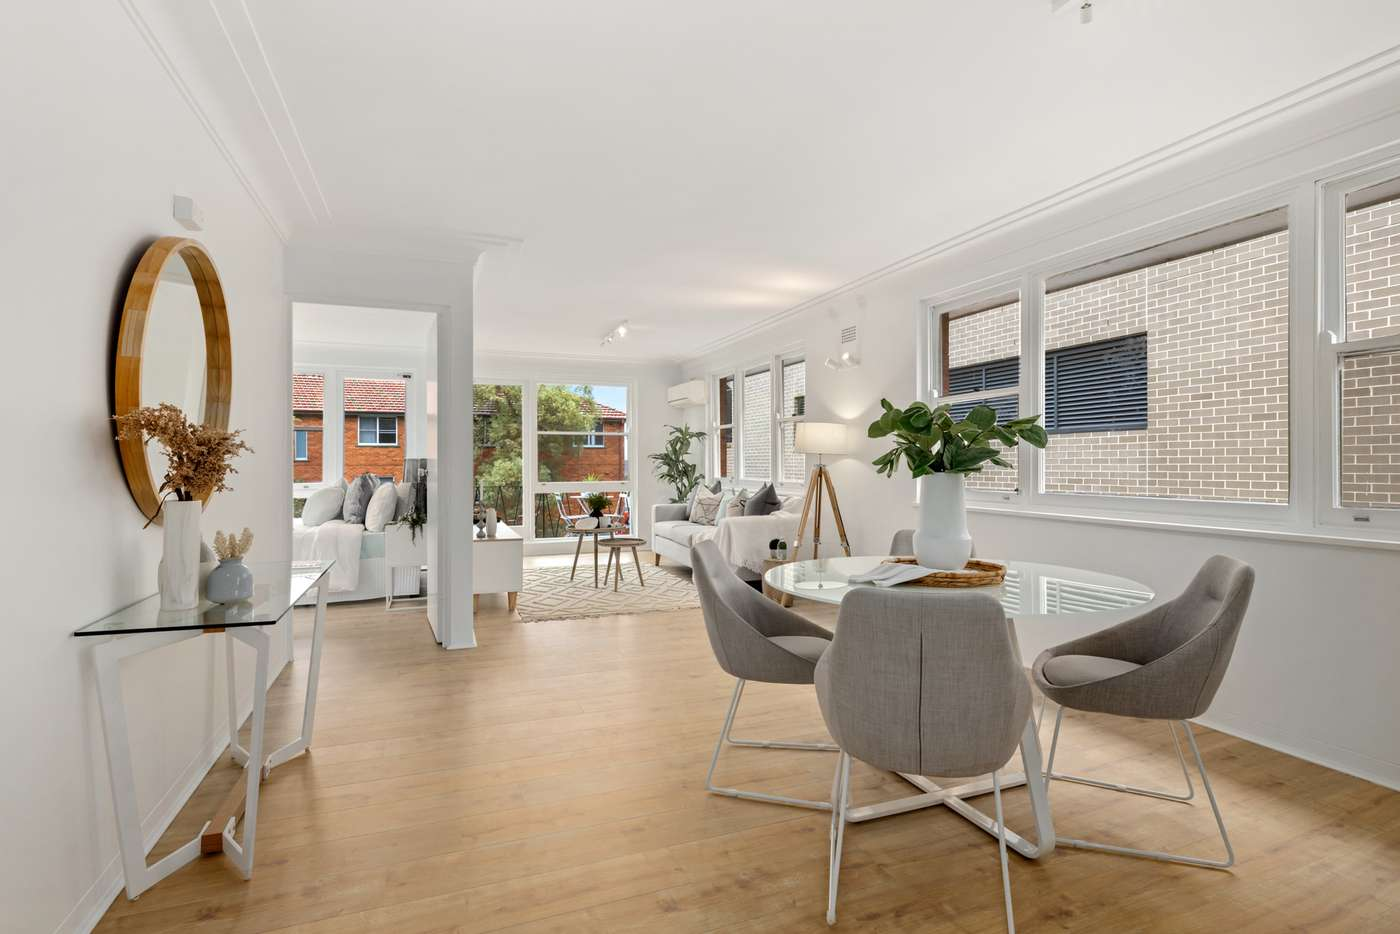 Main view of Homely apartment listing, 8/29 Meeks Street, Kingsford NSW 2032